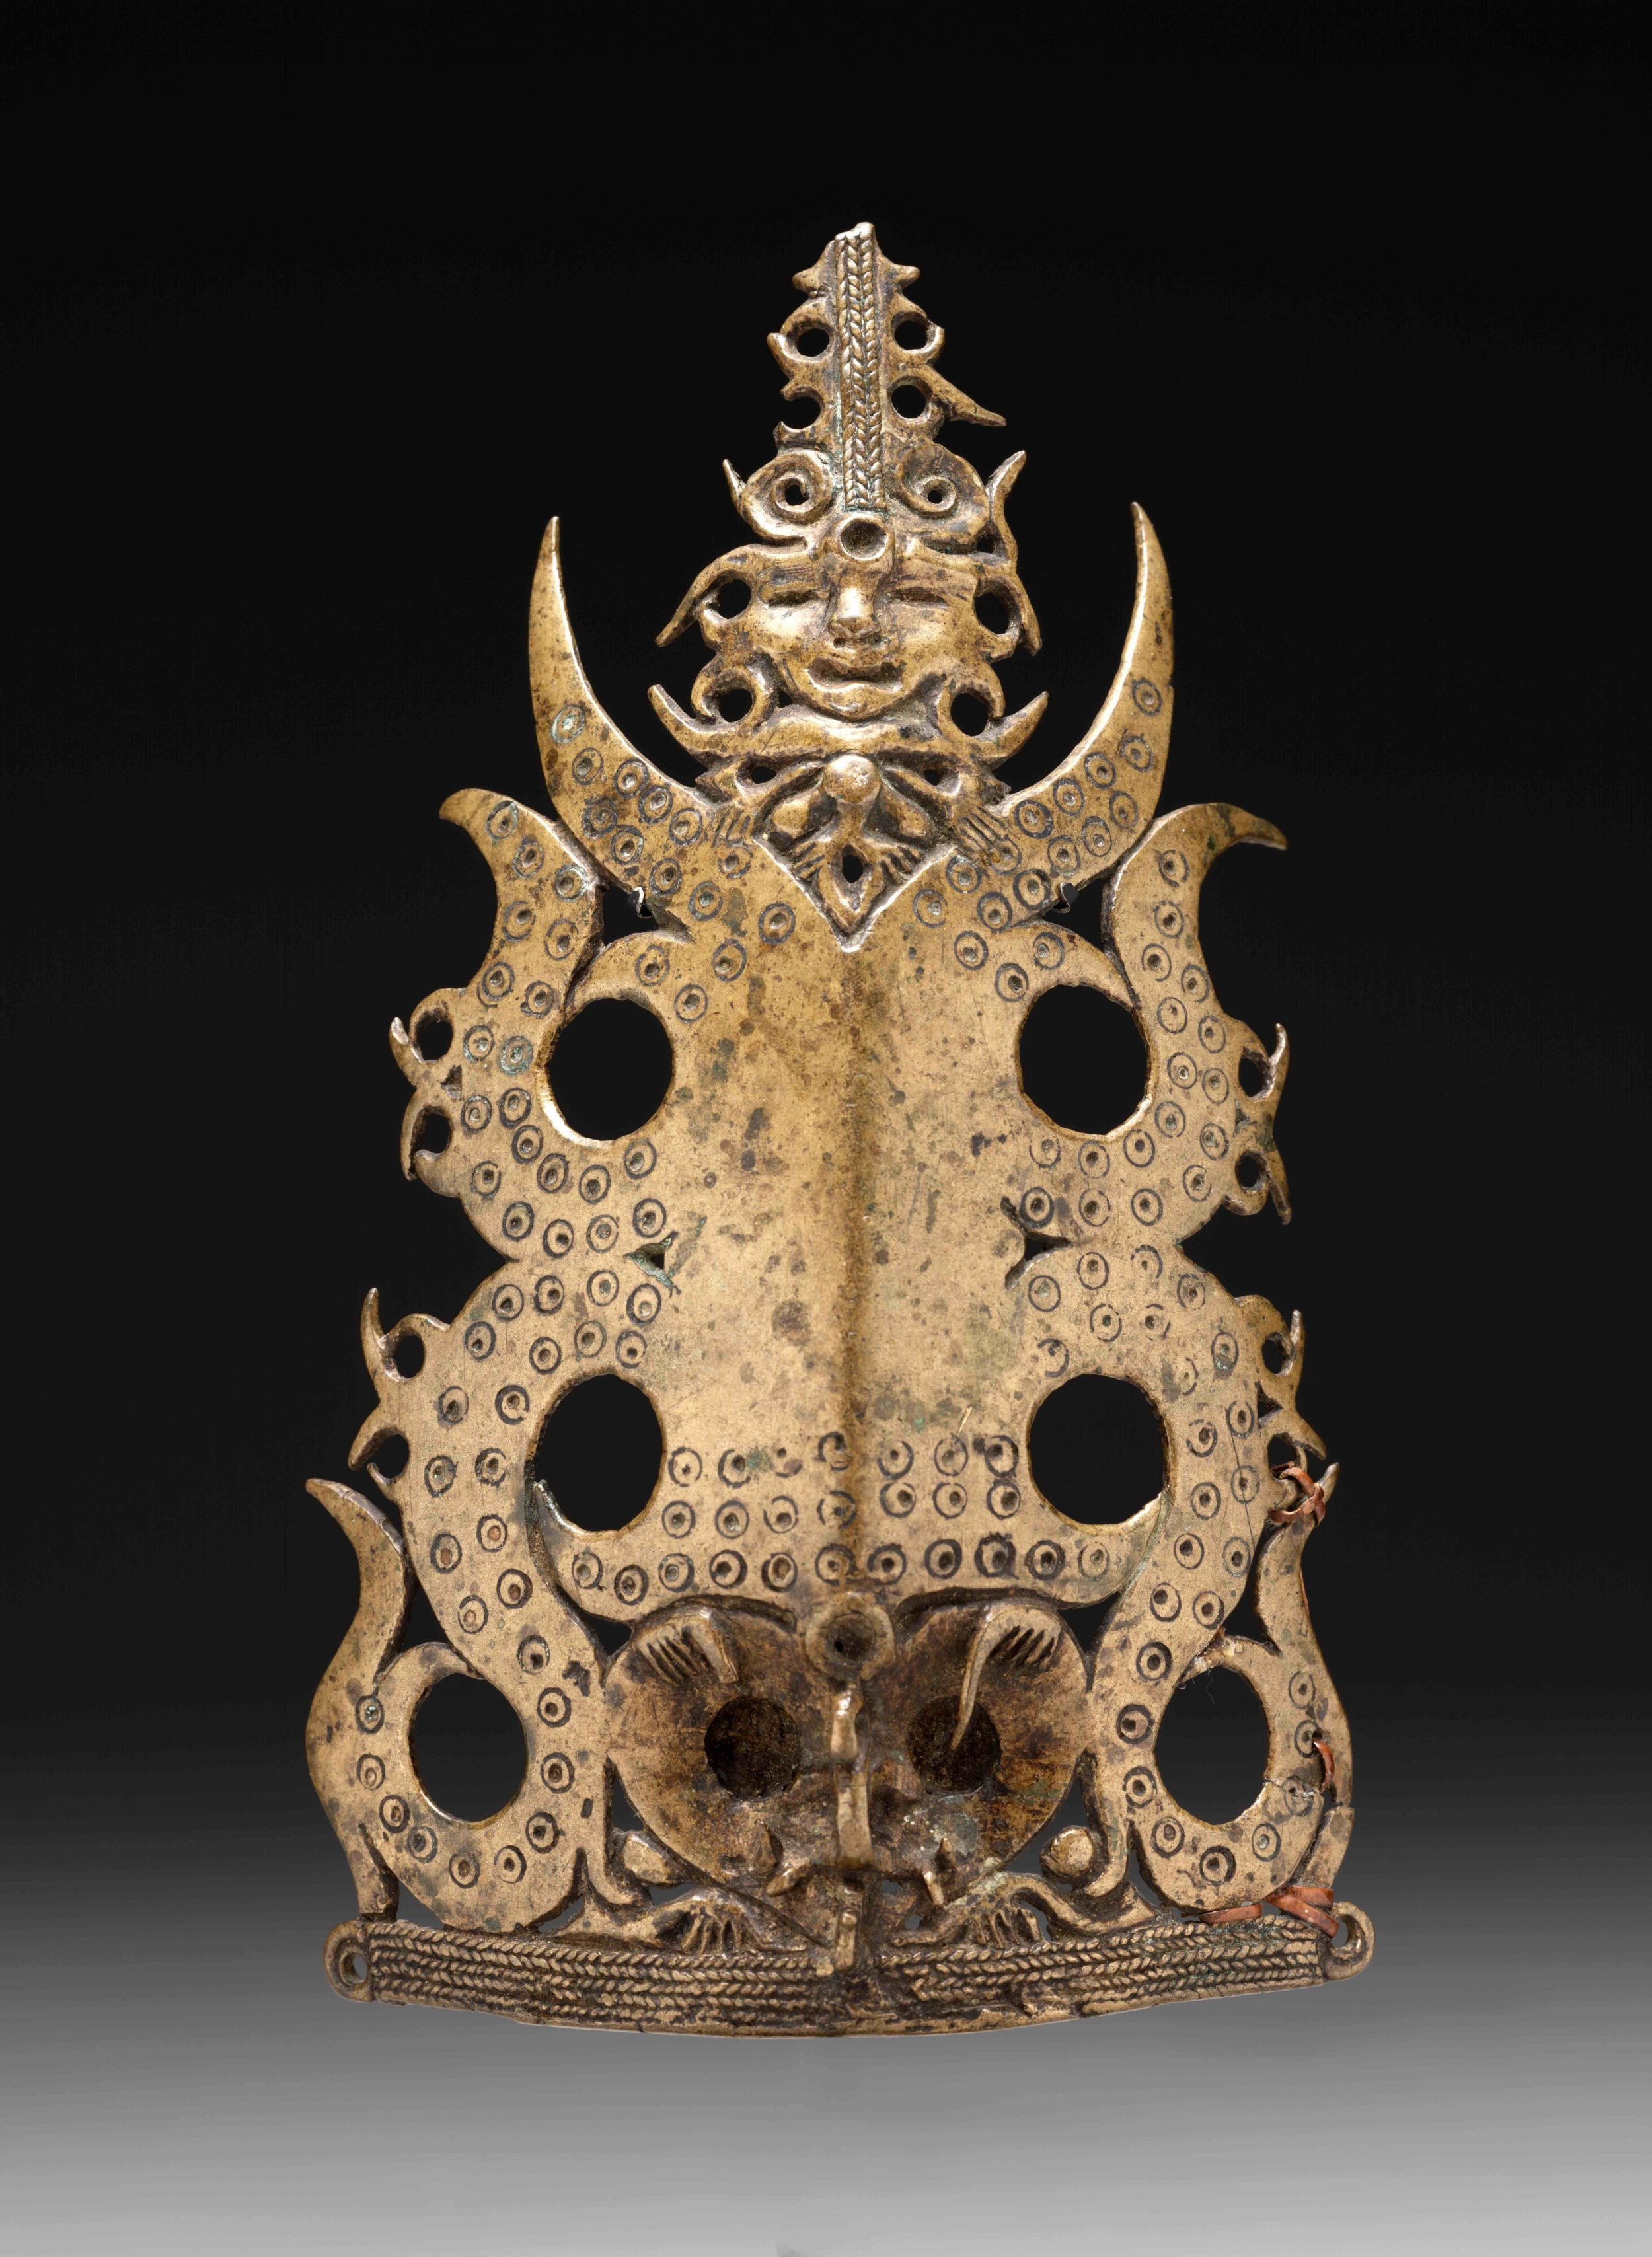 Warrior's Headdress Ornament, Frontal Figure |  Tap Lavong Kayo  © The Dallas Museum of Art | Texas, USA